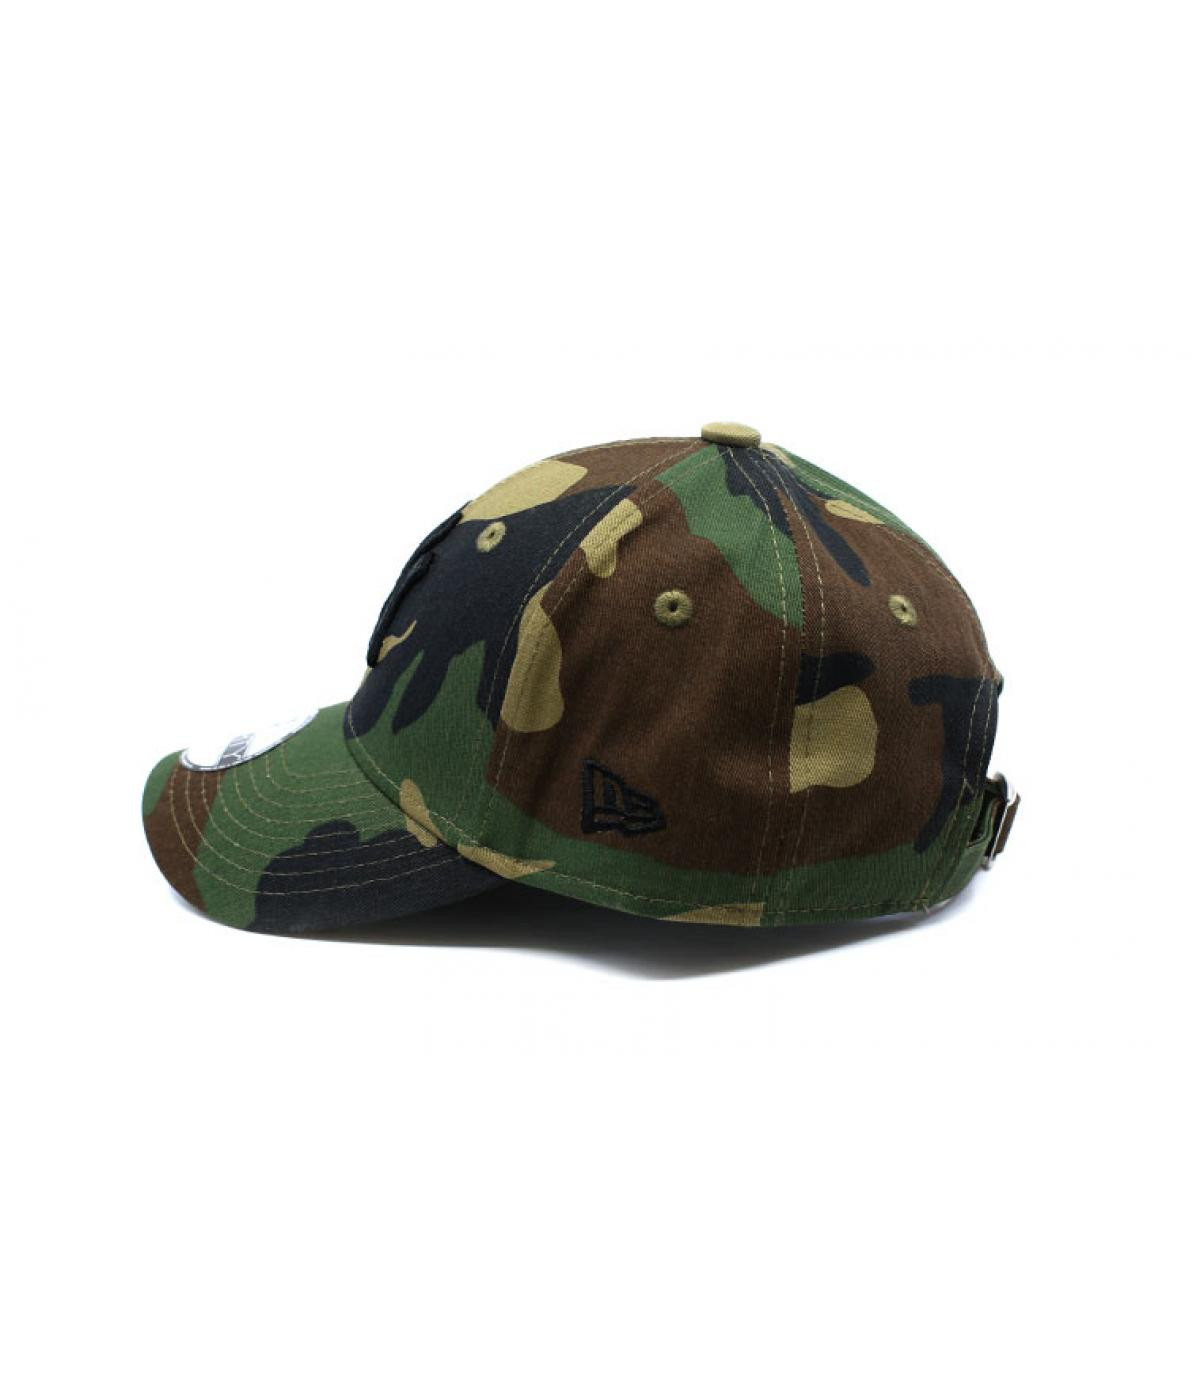 Details Kids League Ess NY 9Forty Camo woodland - afbeeling 4